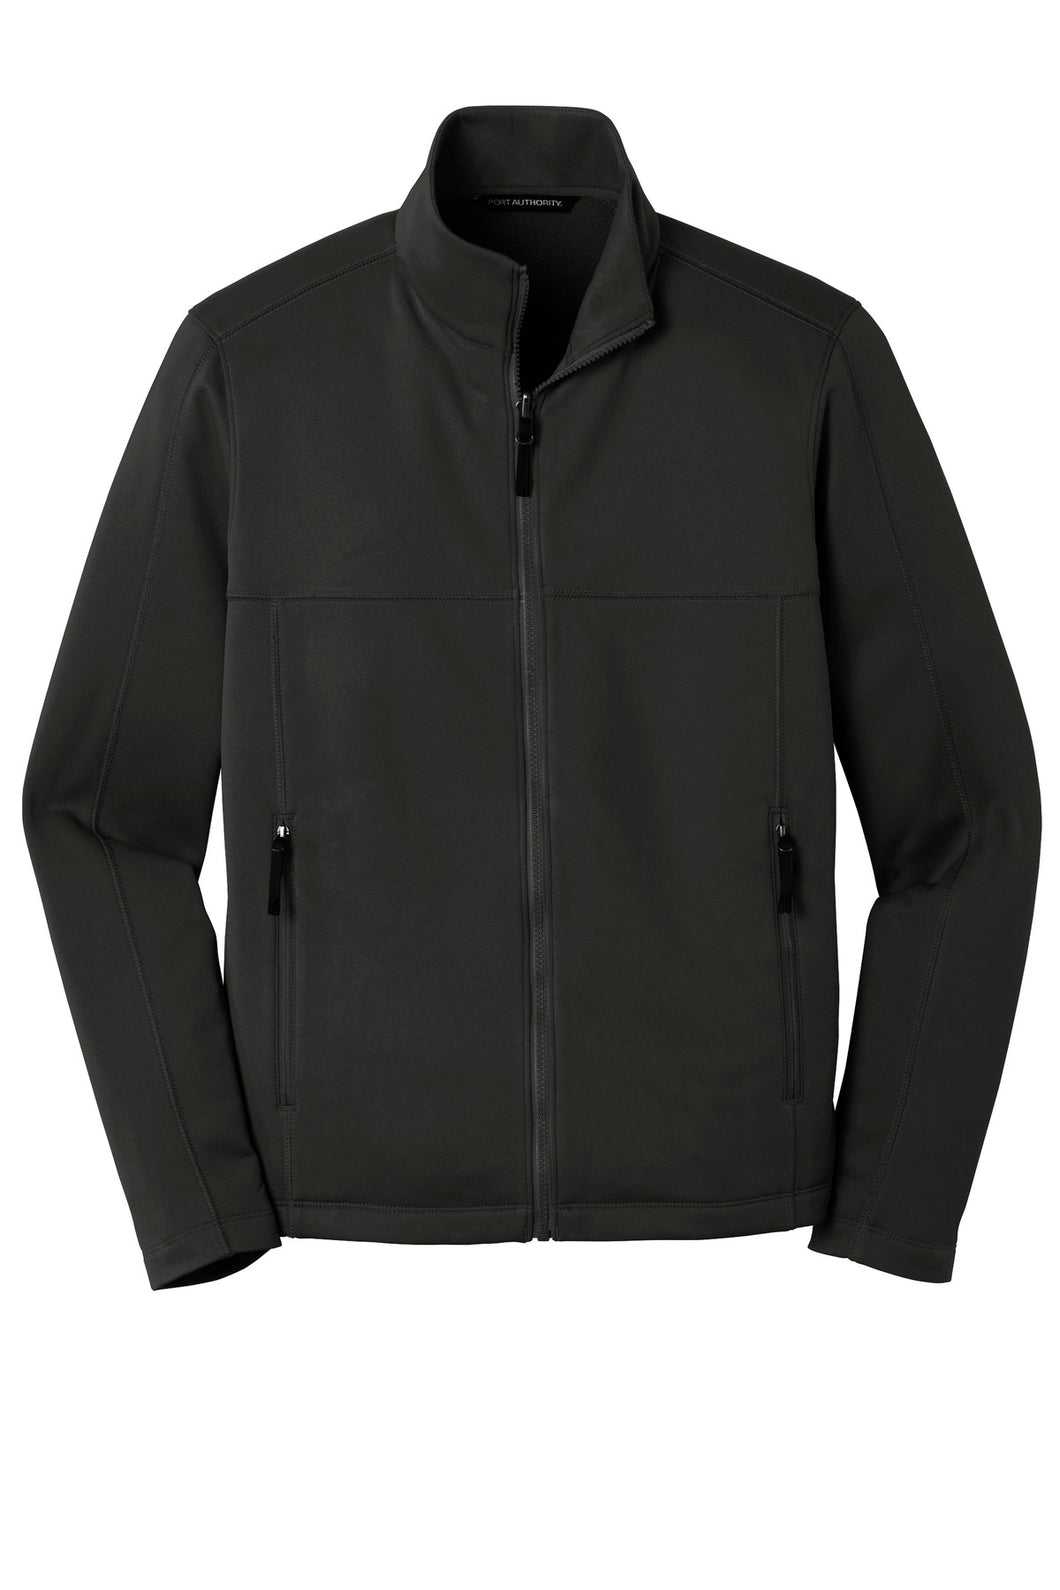 Port Authority ® Collective Smooth Fleece Jacket